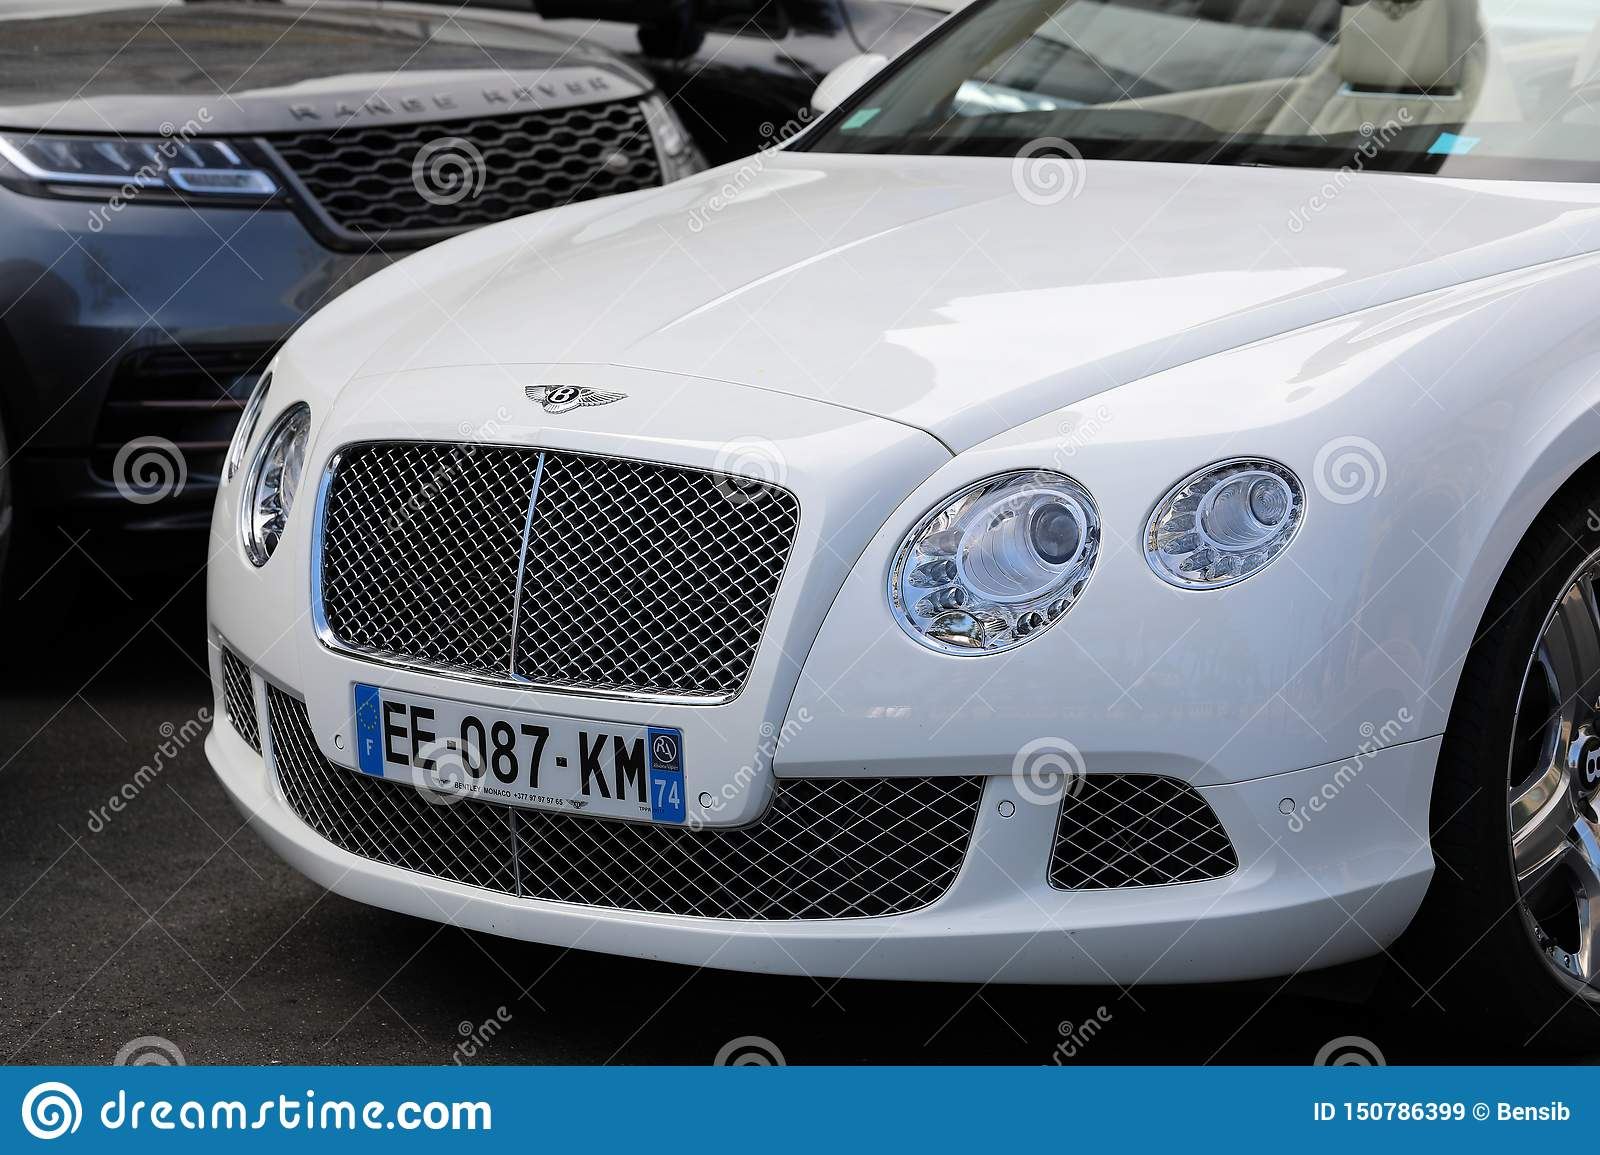 White Bentley Continental Gt Editorial Stock Image Image Of Black Bentley 150786399